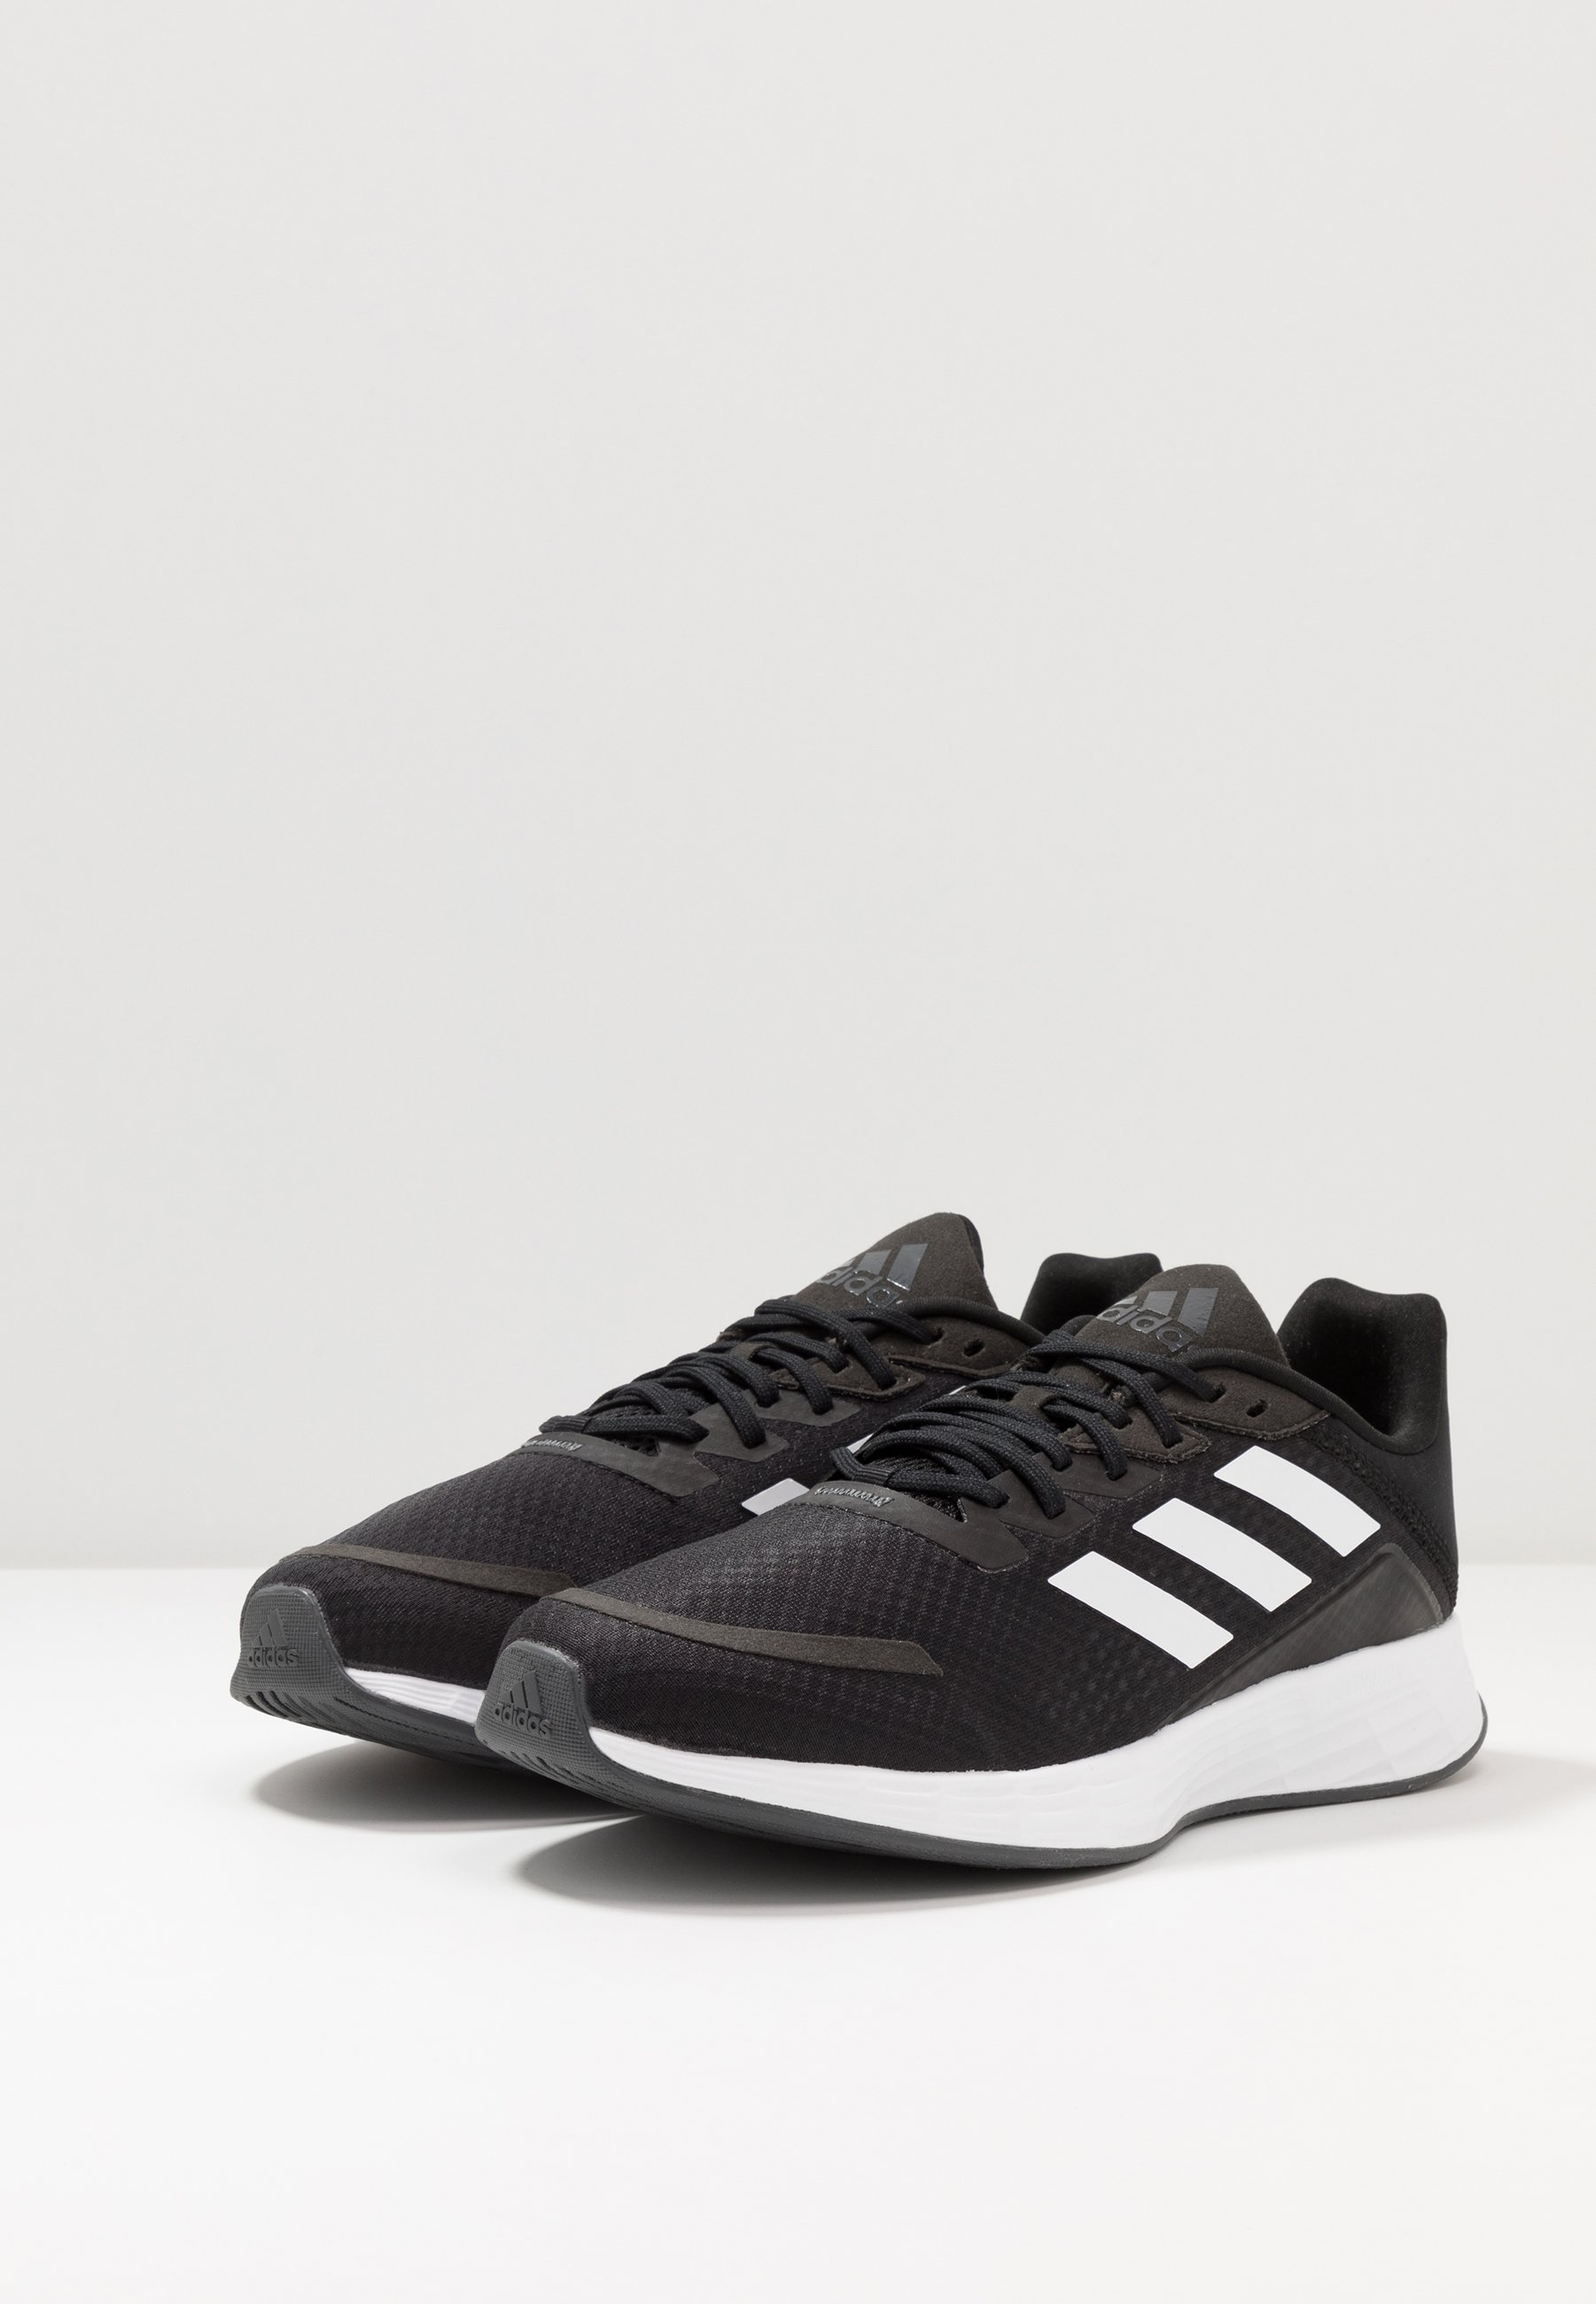 Buy Cheapest adidas Performance DURAMO - Neutral running shoes - core black | men's shoes 2020 BVYSo